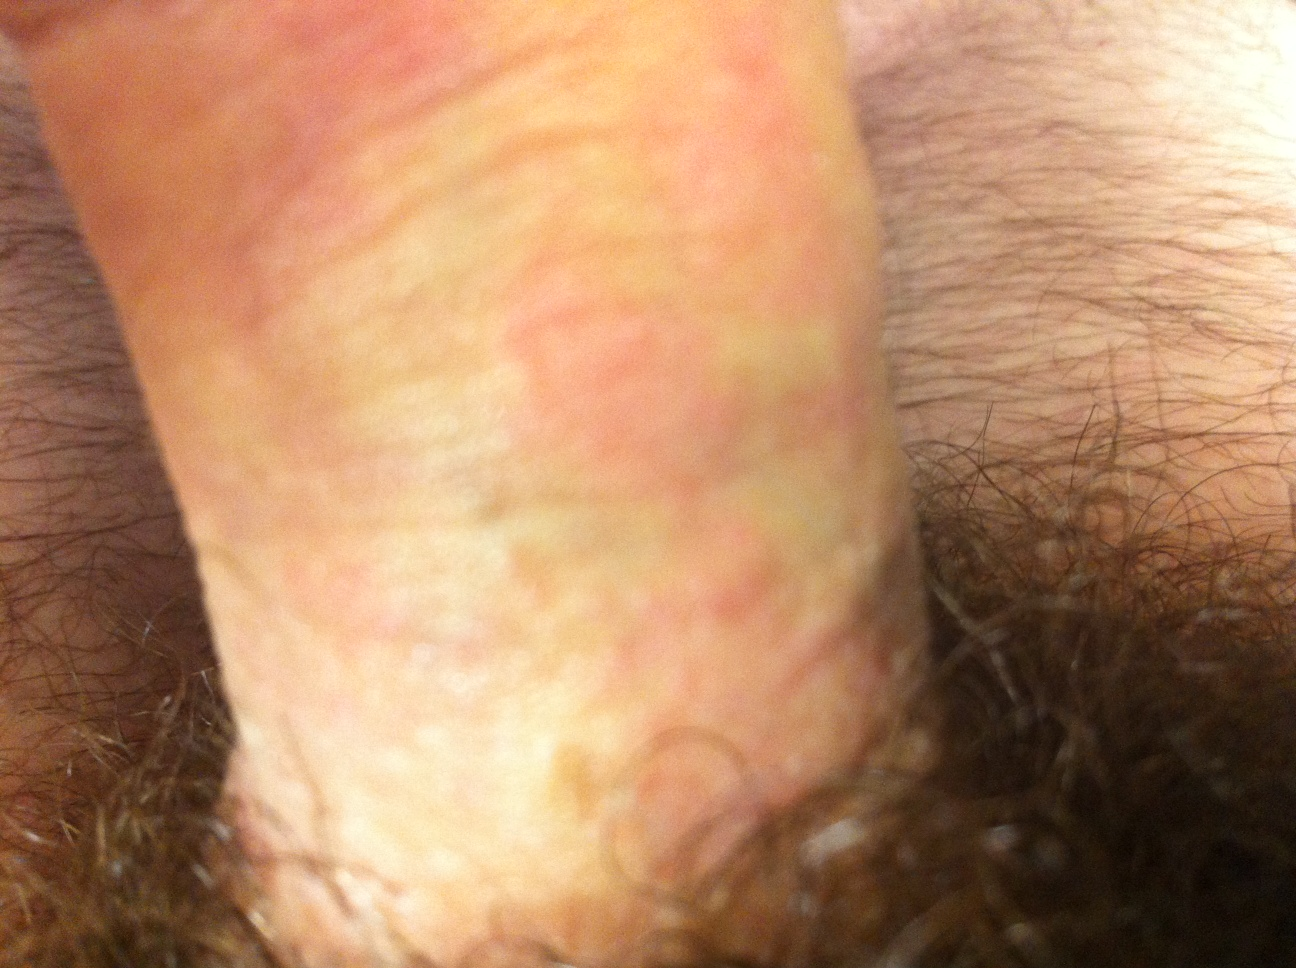 Rash on penis from sex